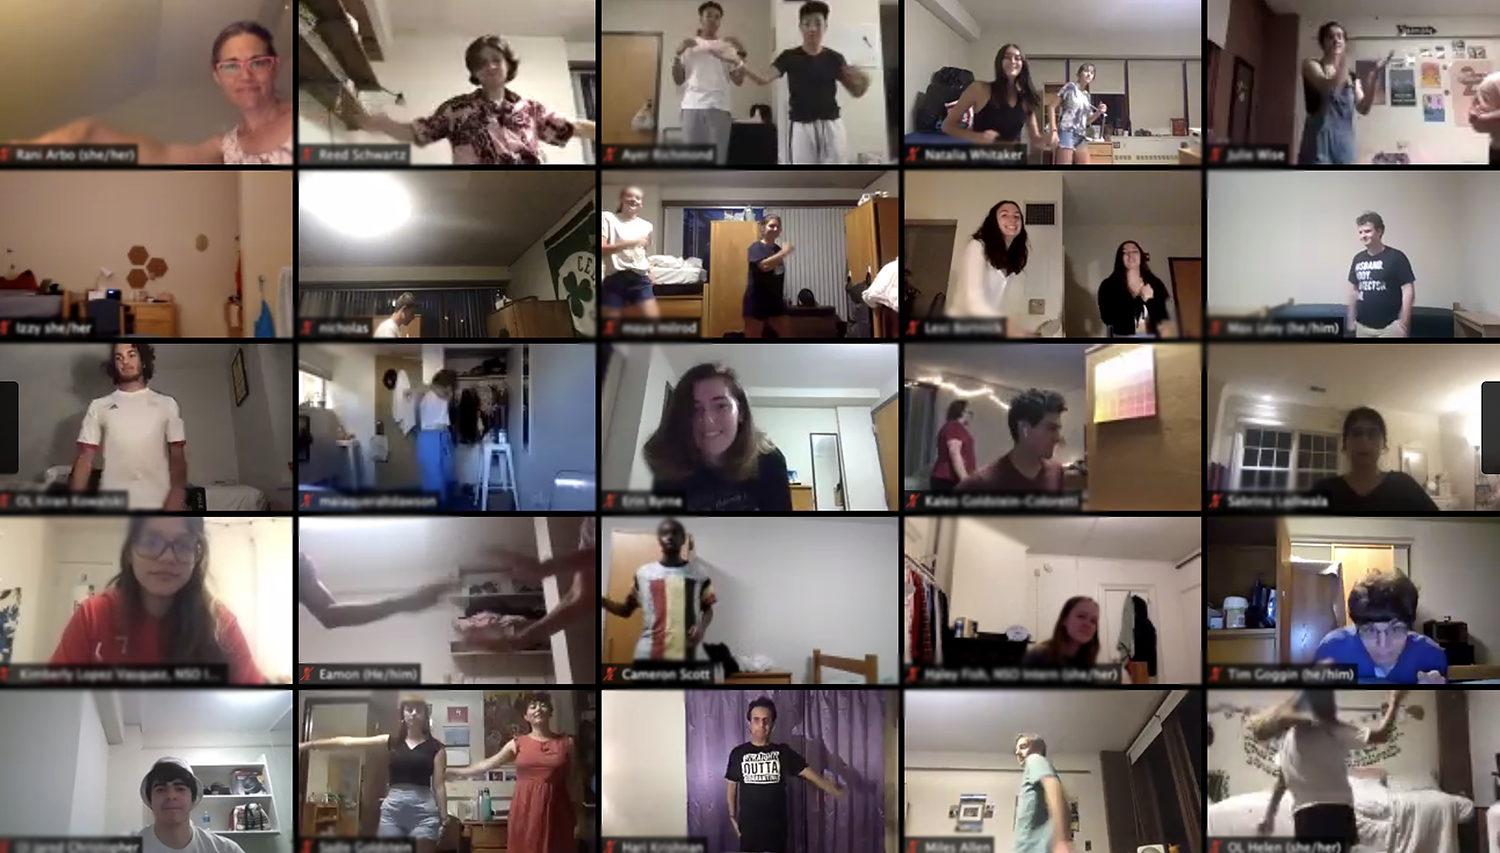 While the experience is usually done in-person on Andrus Field, this year the choreographers taught the students movements through 25-minute virtual breakout groups. At the end, the groups joined together and made a final performance set to the same music.